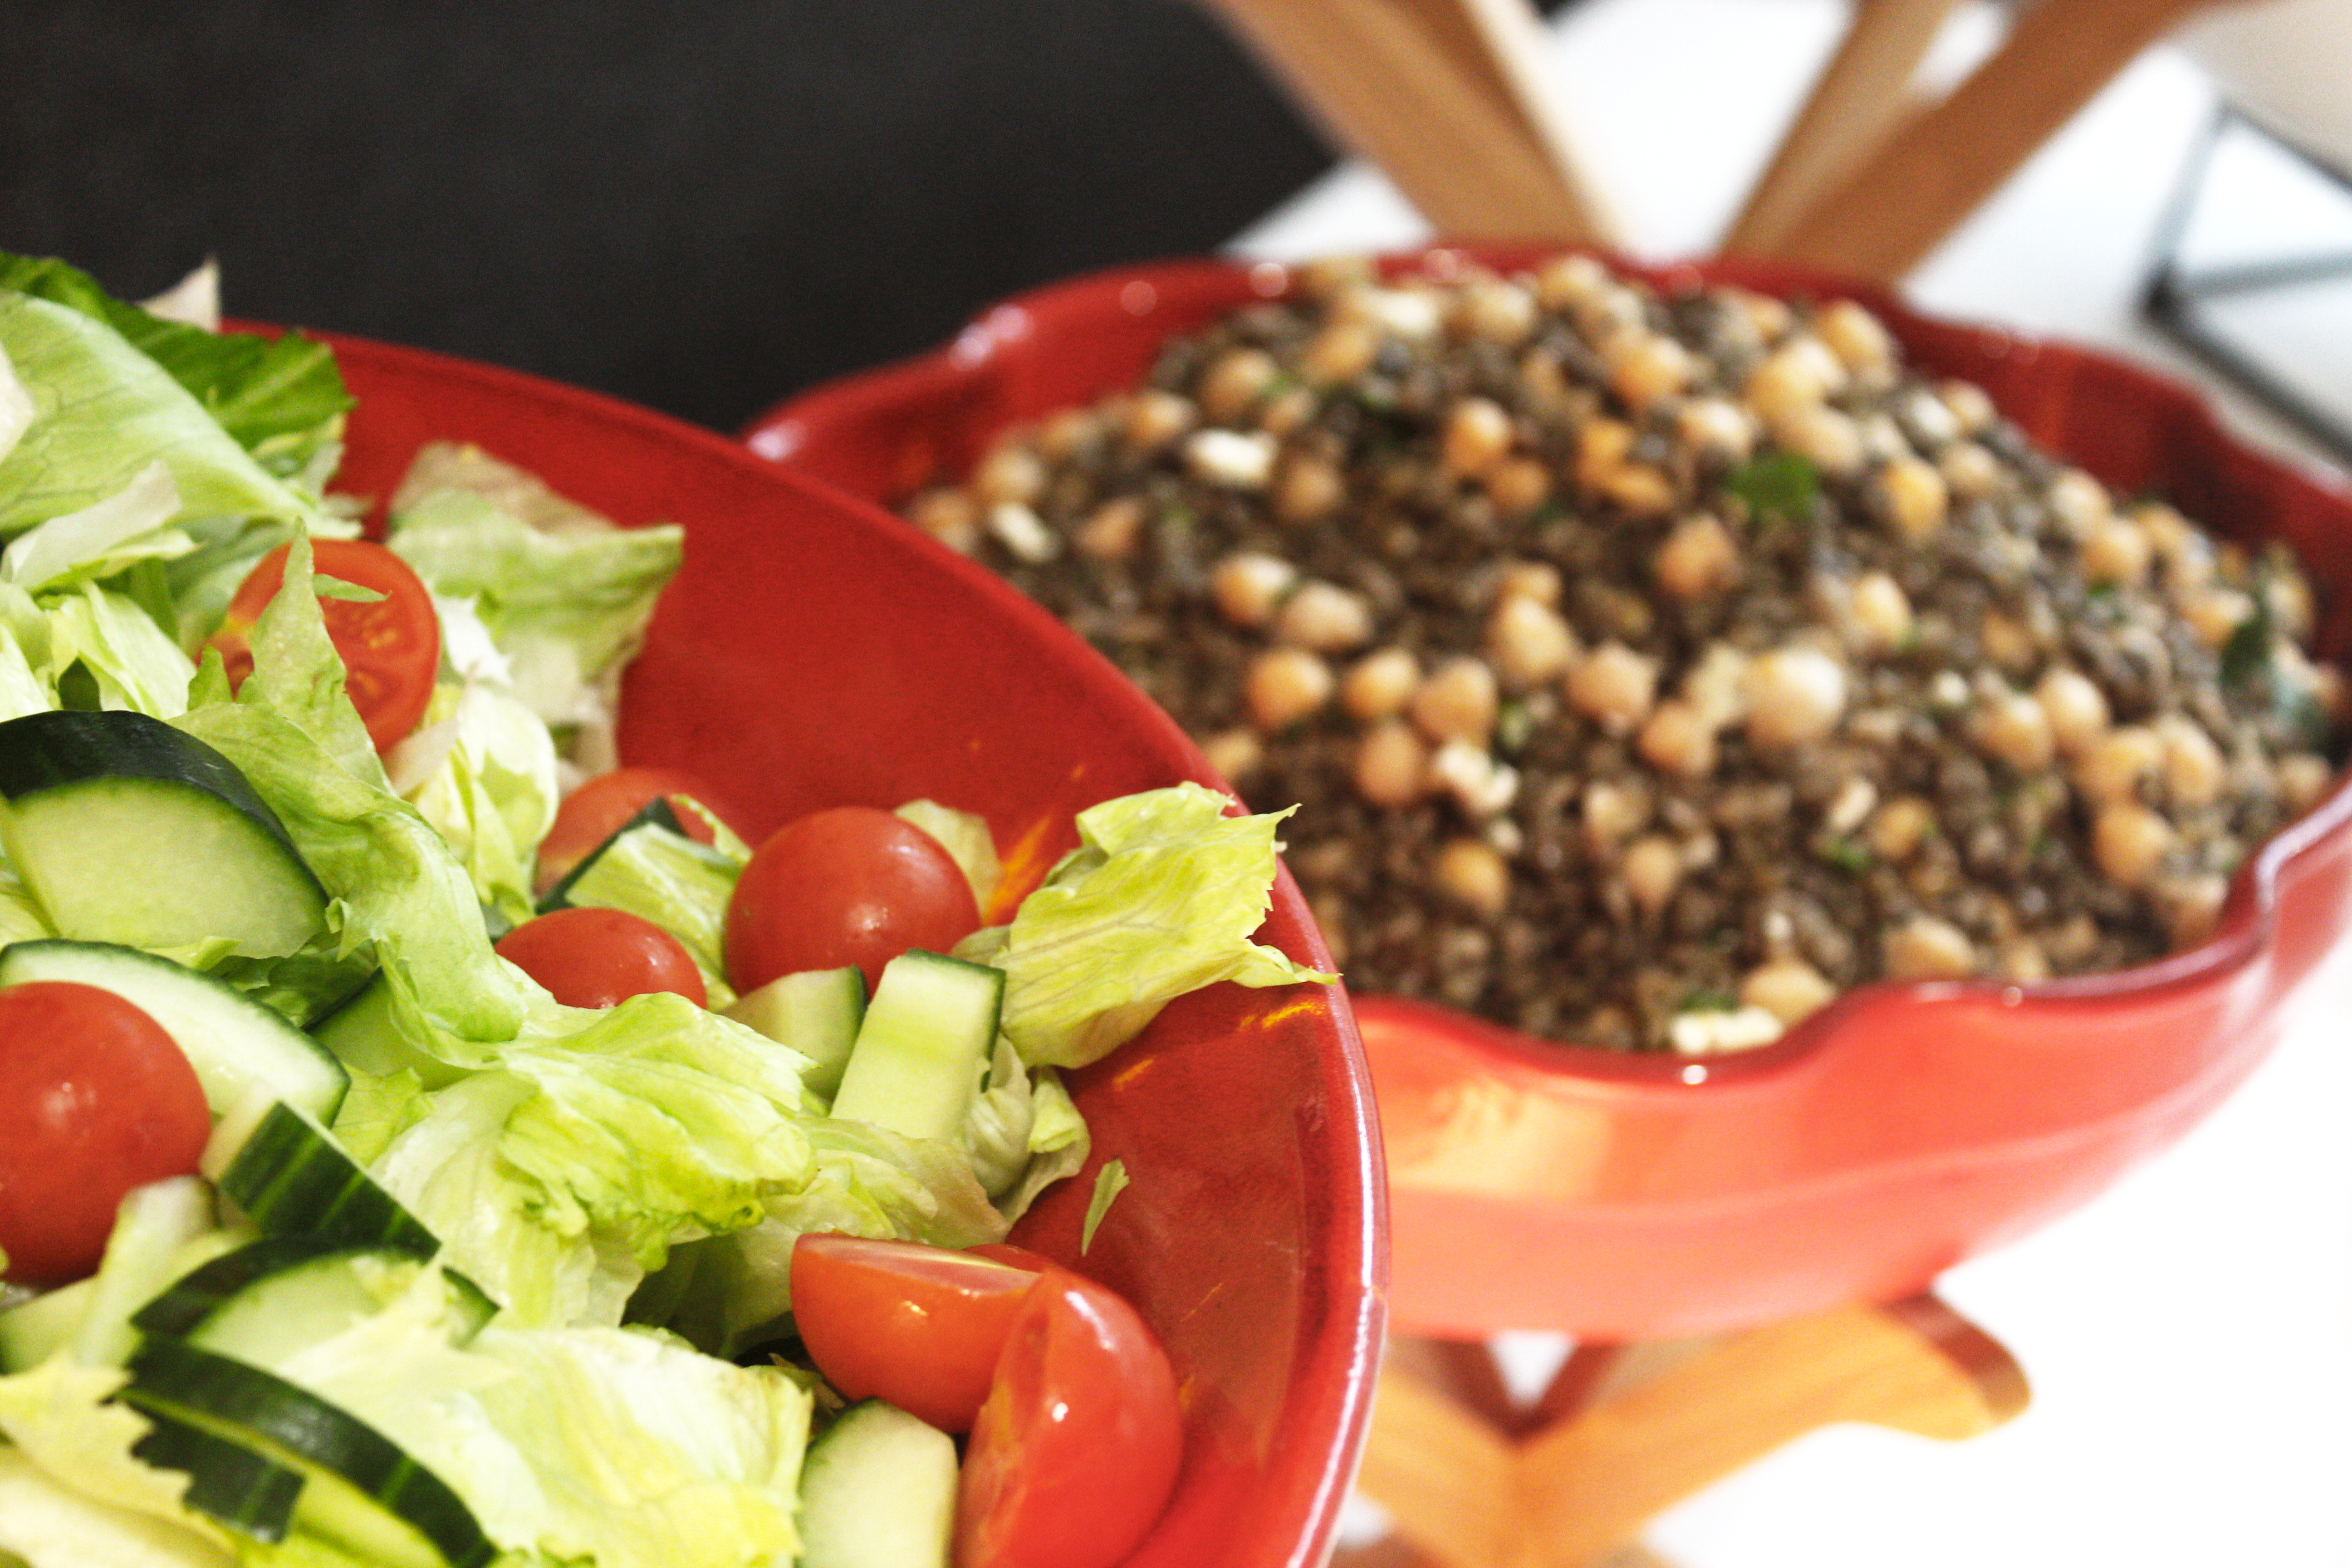 Salad and Chickpeas